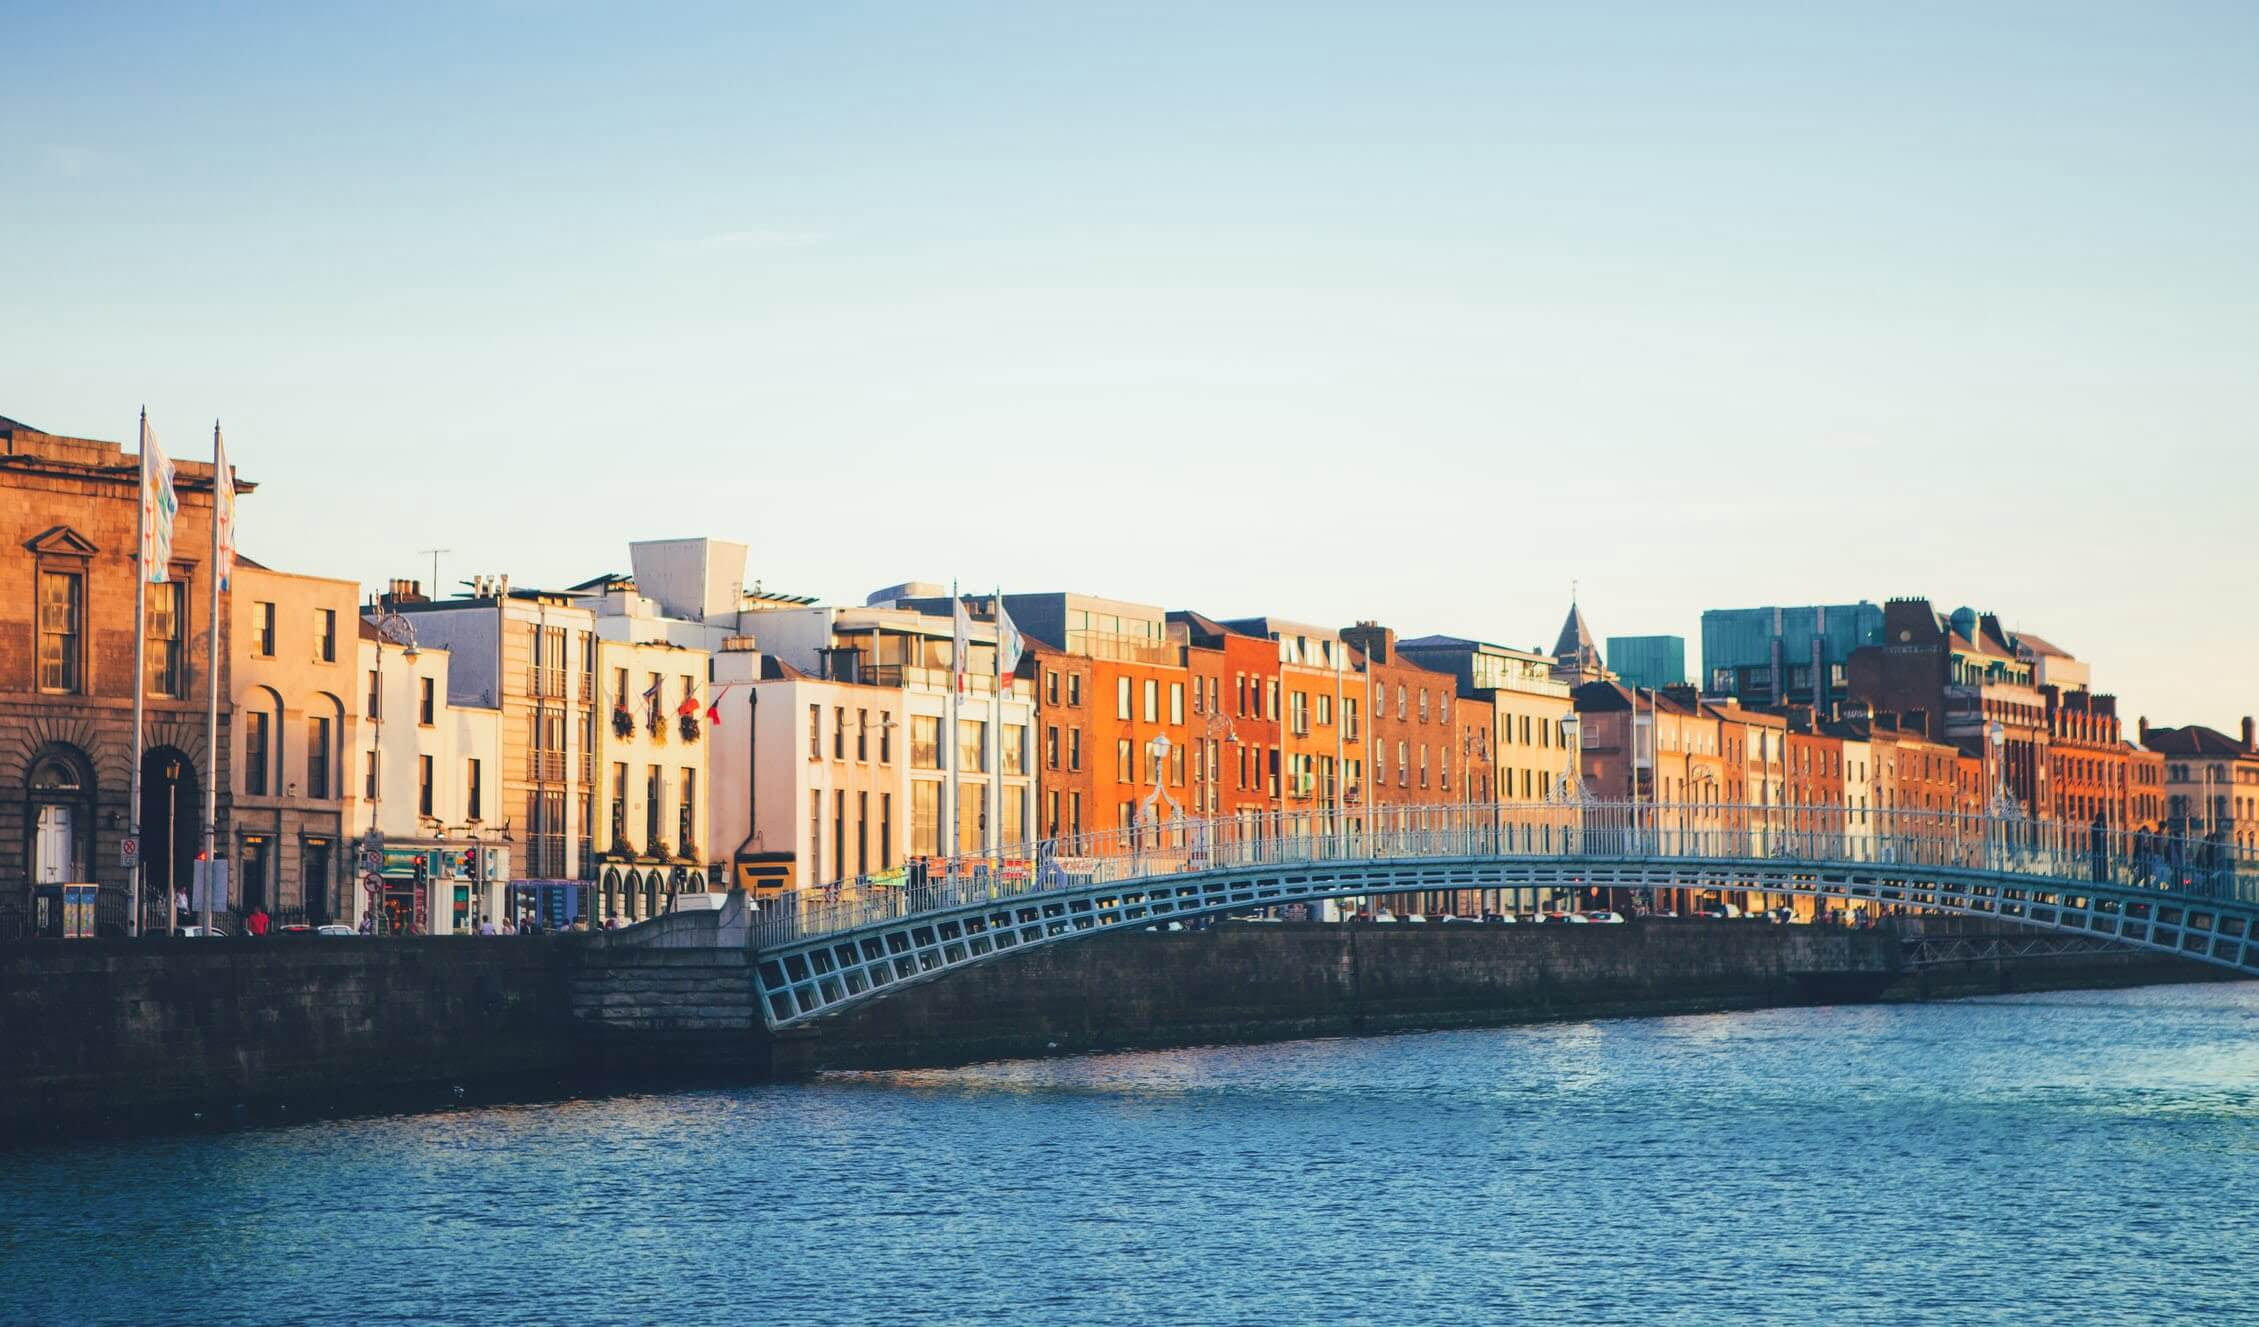 View of Ha'penny Bridge crossing the River Liffey River